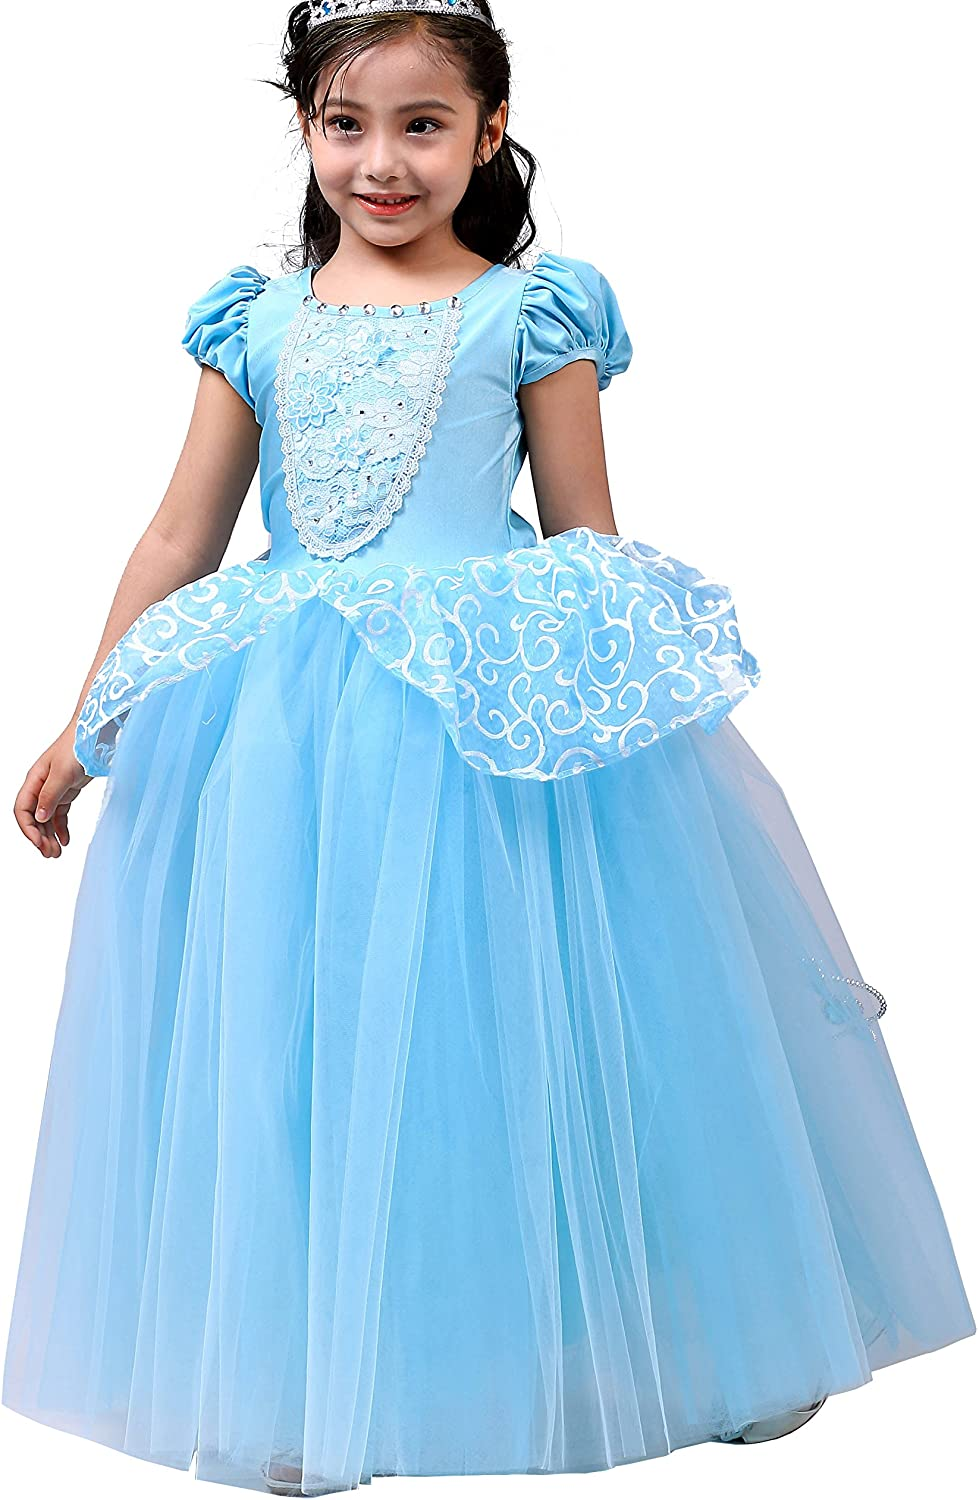 Dressy Daisy Girls Princess Costumes Halloween Party Princess Dress Up